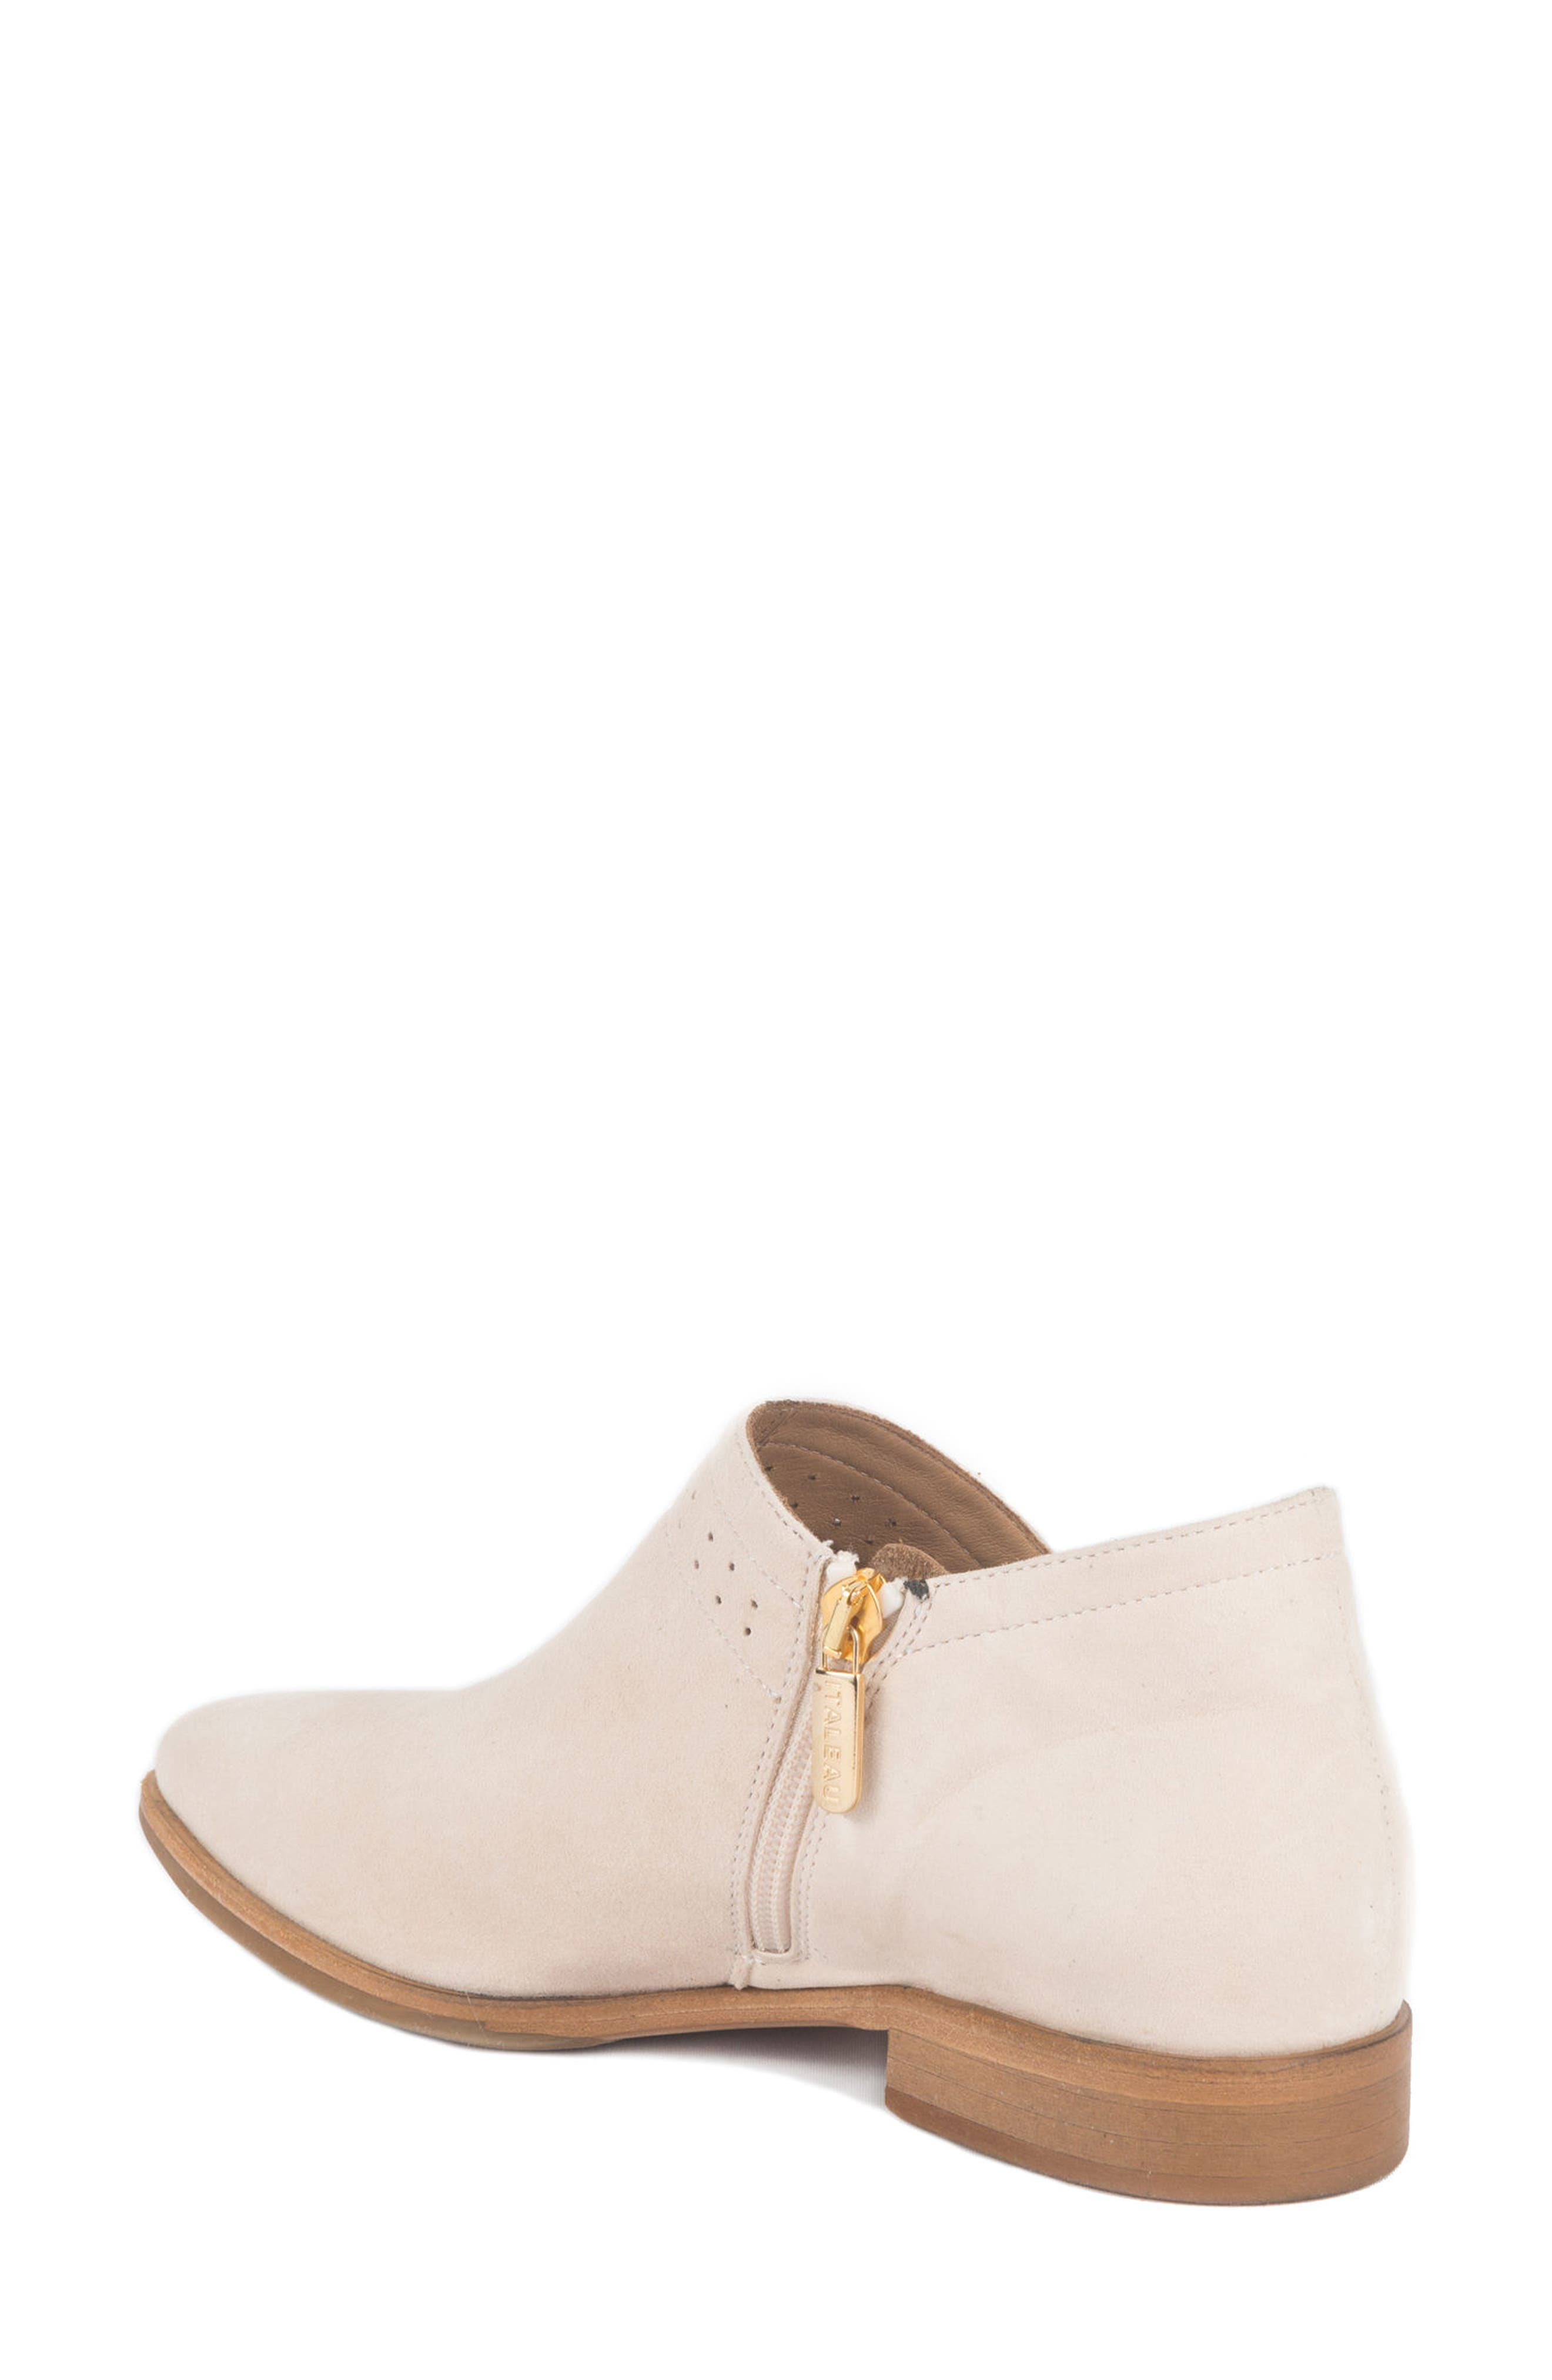 Florence Water Resistant Bootie,                             Alternate thumbnail 2, color,                             250